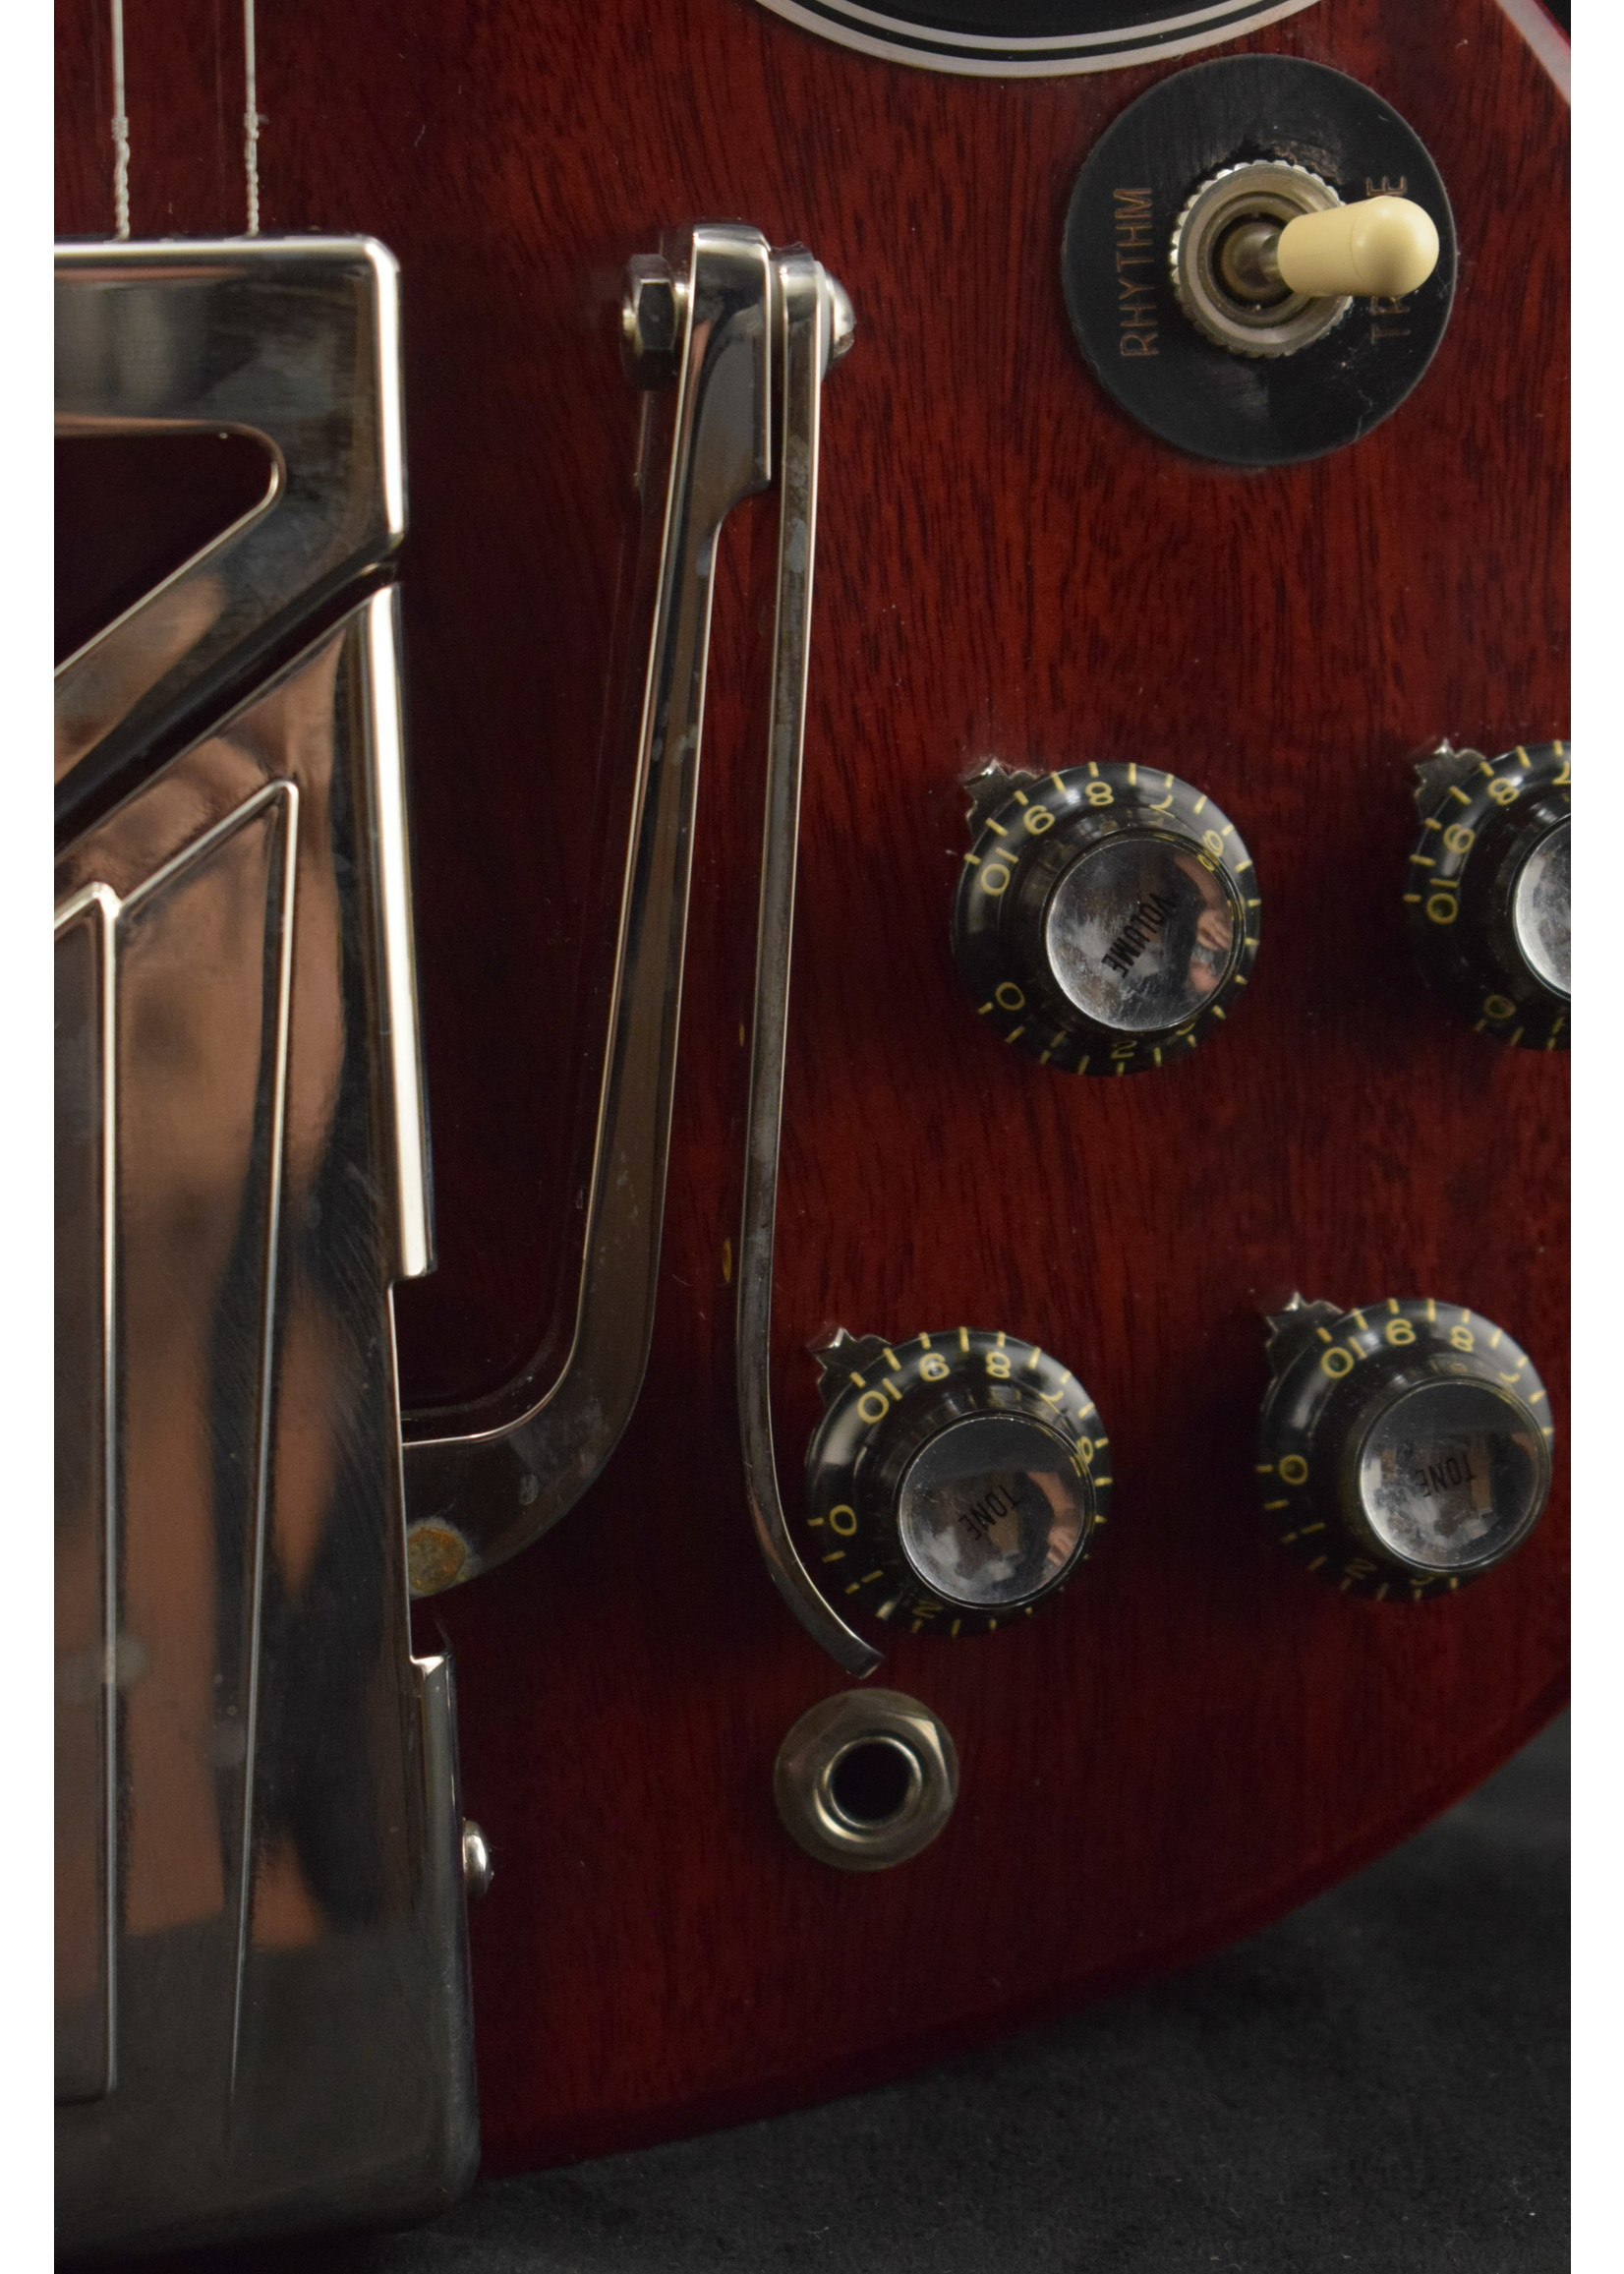 Gibson Gibson 60th Anniversary 1961 Les Paul SG Standard With Sideways Vibrola Cherry Red